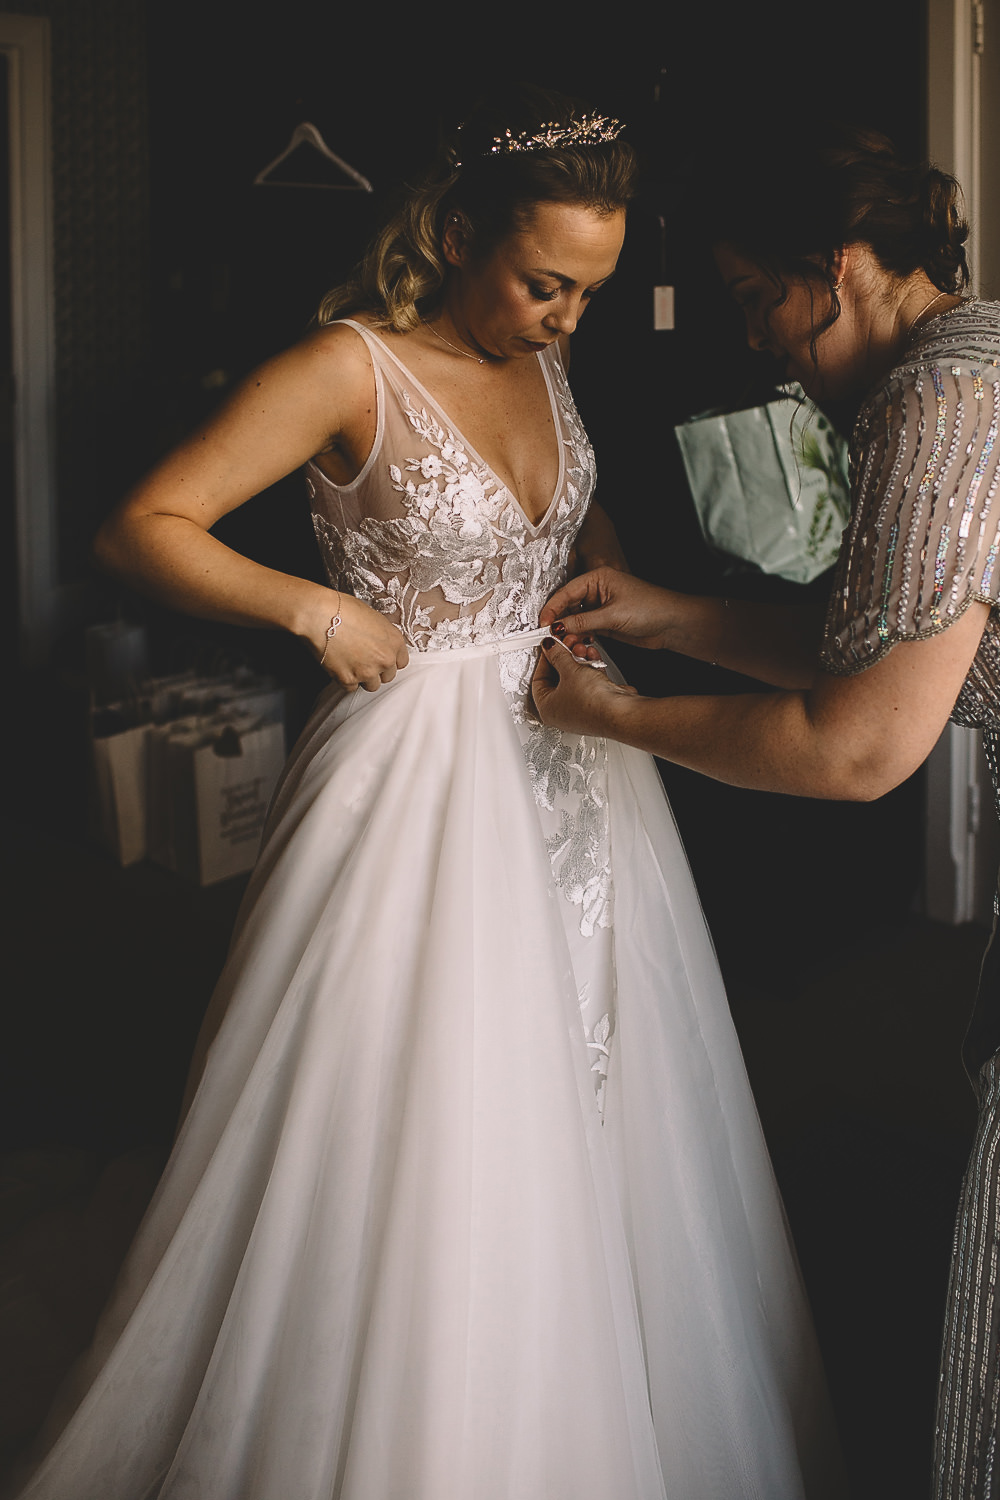 Dress Gown Bride Bridal Made With Love Embroidered Floral Tulle Skirt Straps Train Hampton Manor Wedding Carrie Lavers Photography